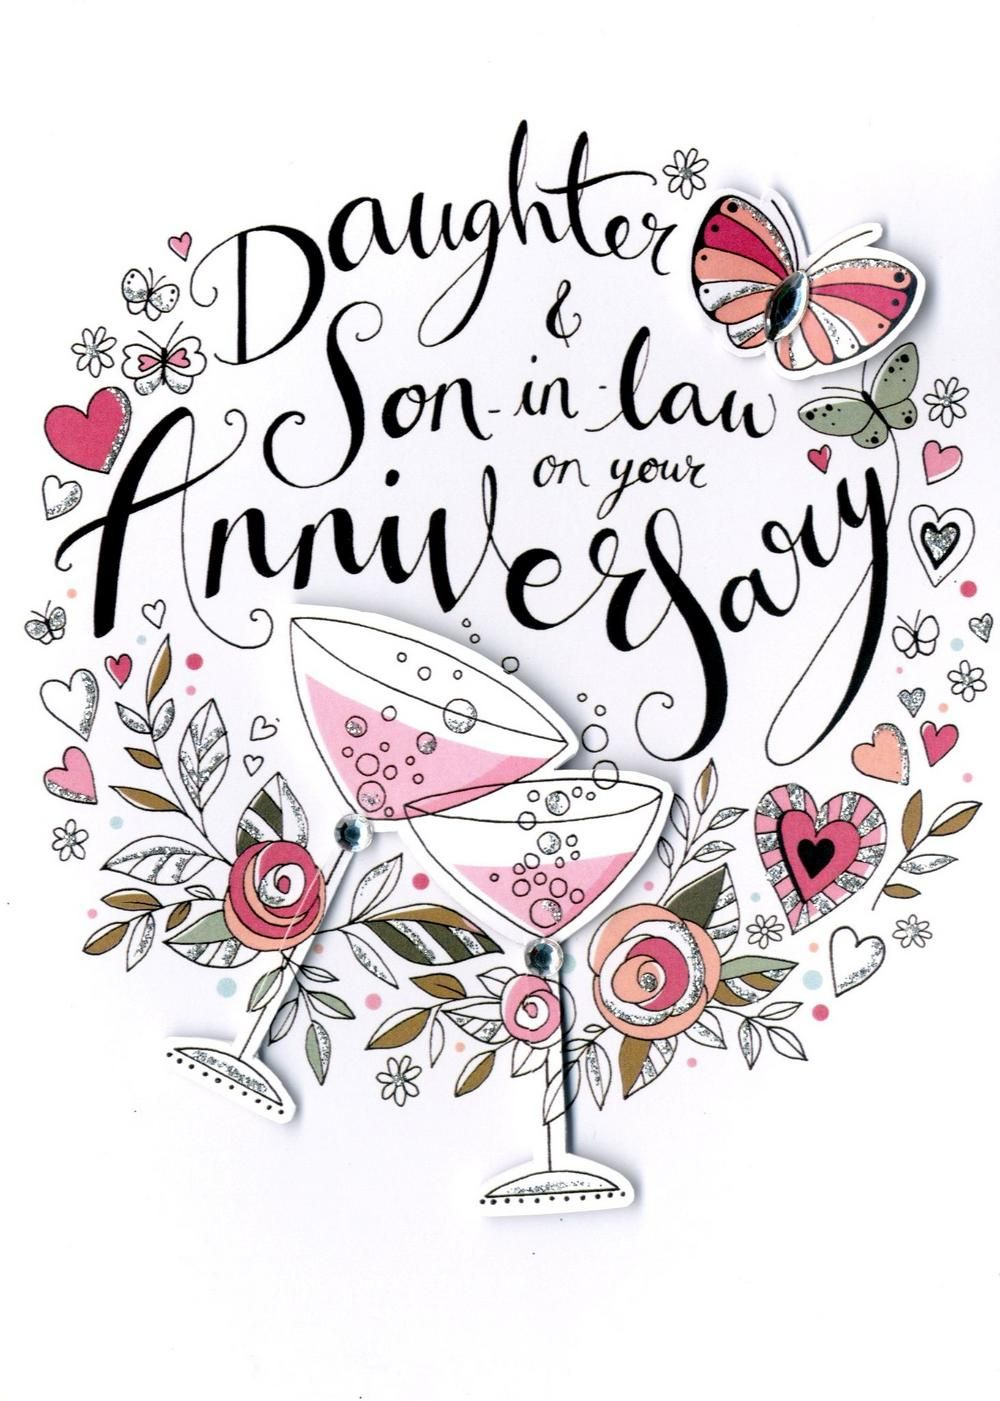 Daughter Son In Law Anniversary Card Cards Happy Anniversary Quotes Wedding Anniversary Wishes Happy Anniversary Cards